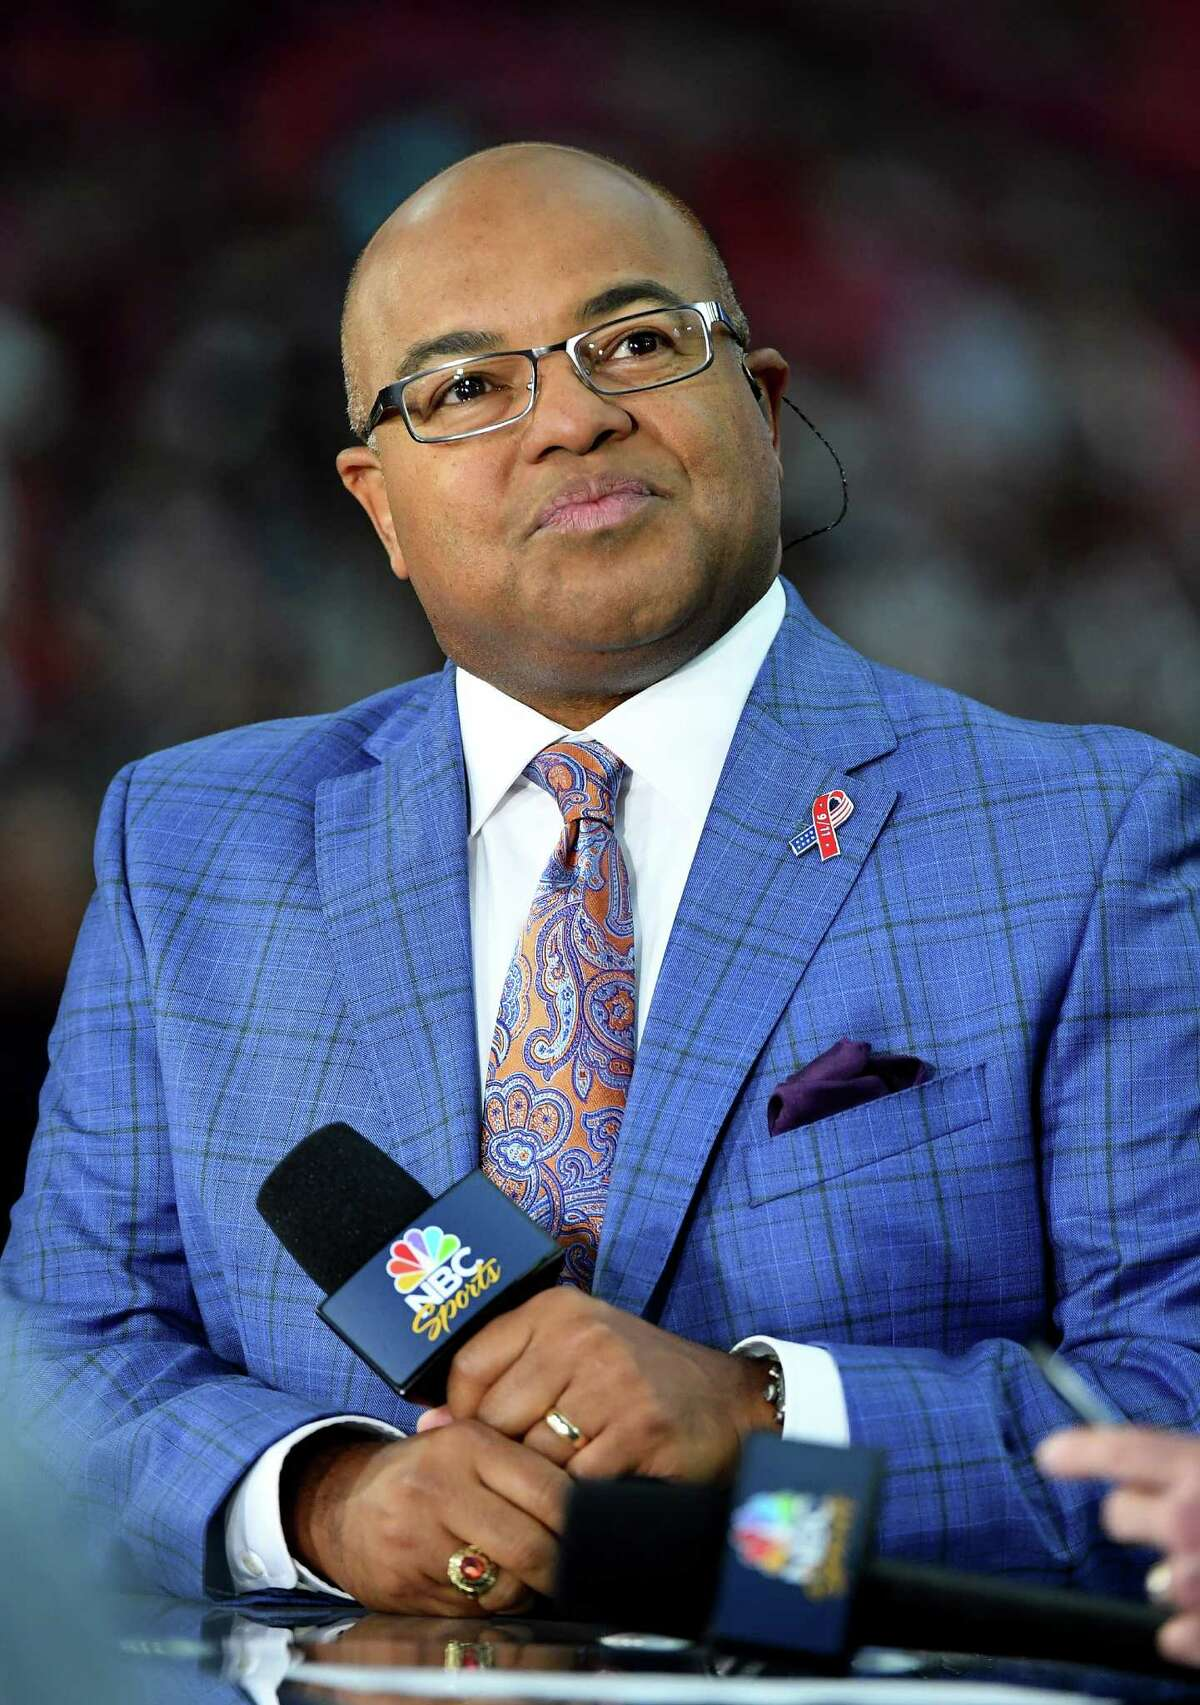 Sportscaster Mike Tirico sits on the Sunday Night Football set before the NFL game between the New England Patriots and the Arizona Cardinals at University of Phoenix Stadium on September 11, 2016 in Glendale, Arizona. New England won 23-21. (Photo by Ethan Miller/Getty Images)